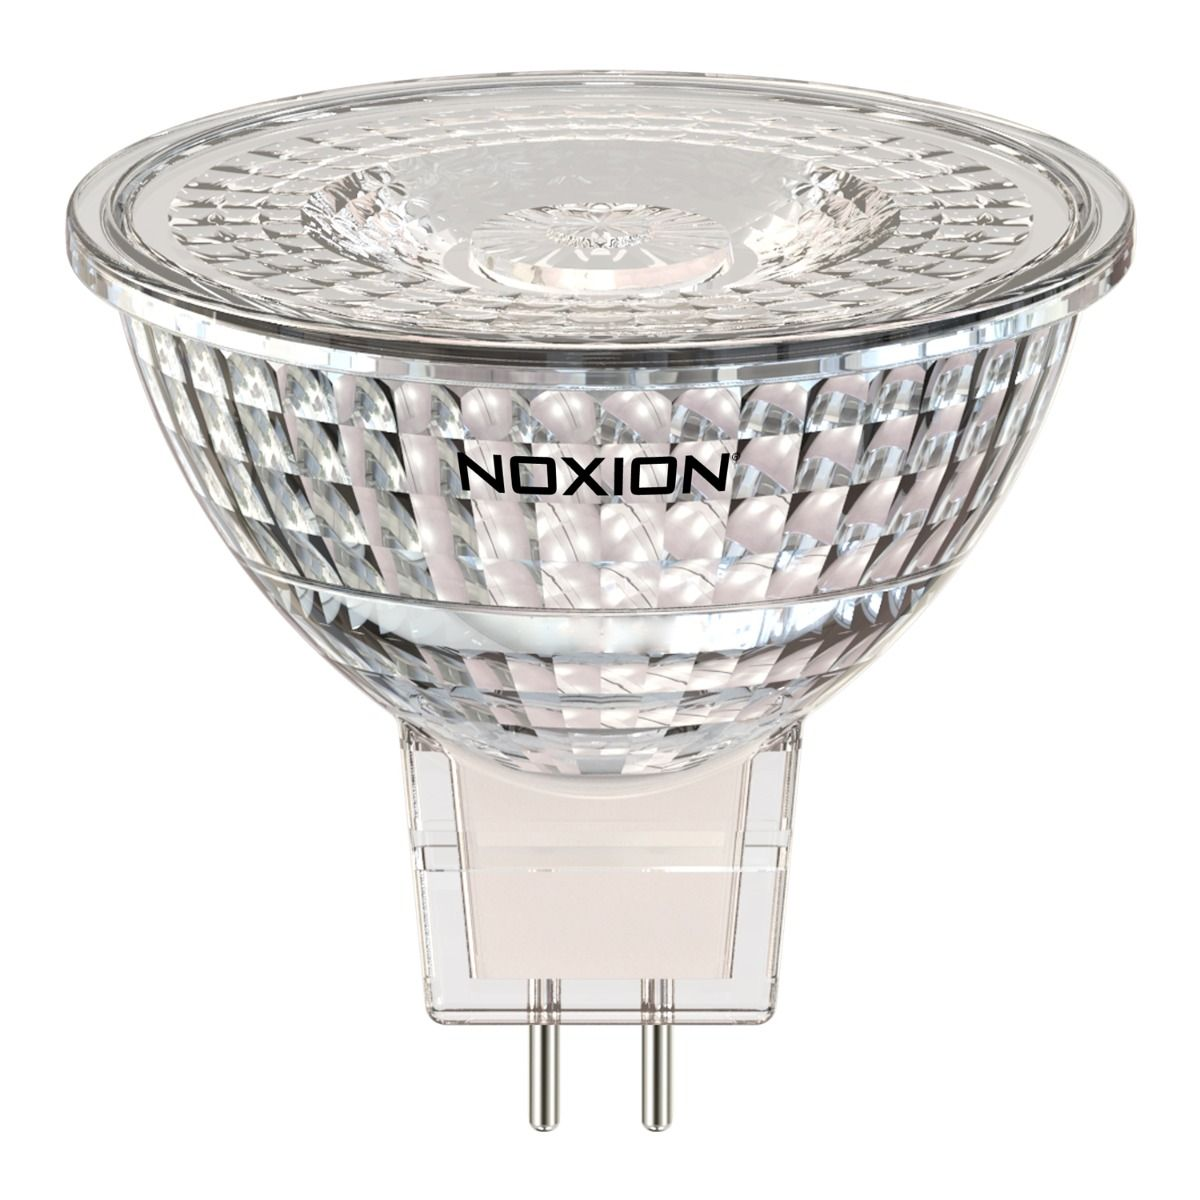 Noxion LED Spot GU5.3 3.2W 827 36D 270lm | Replacer for 20W